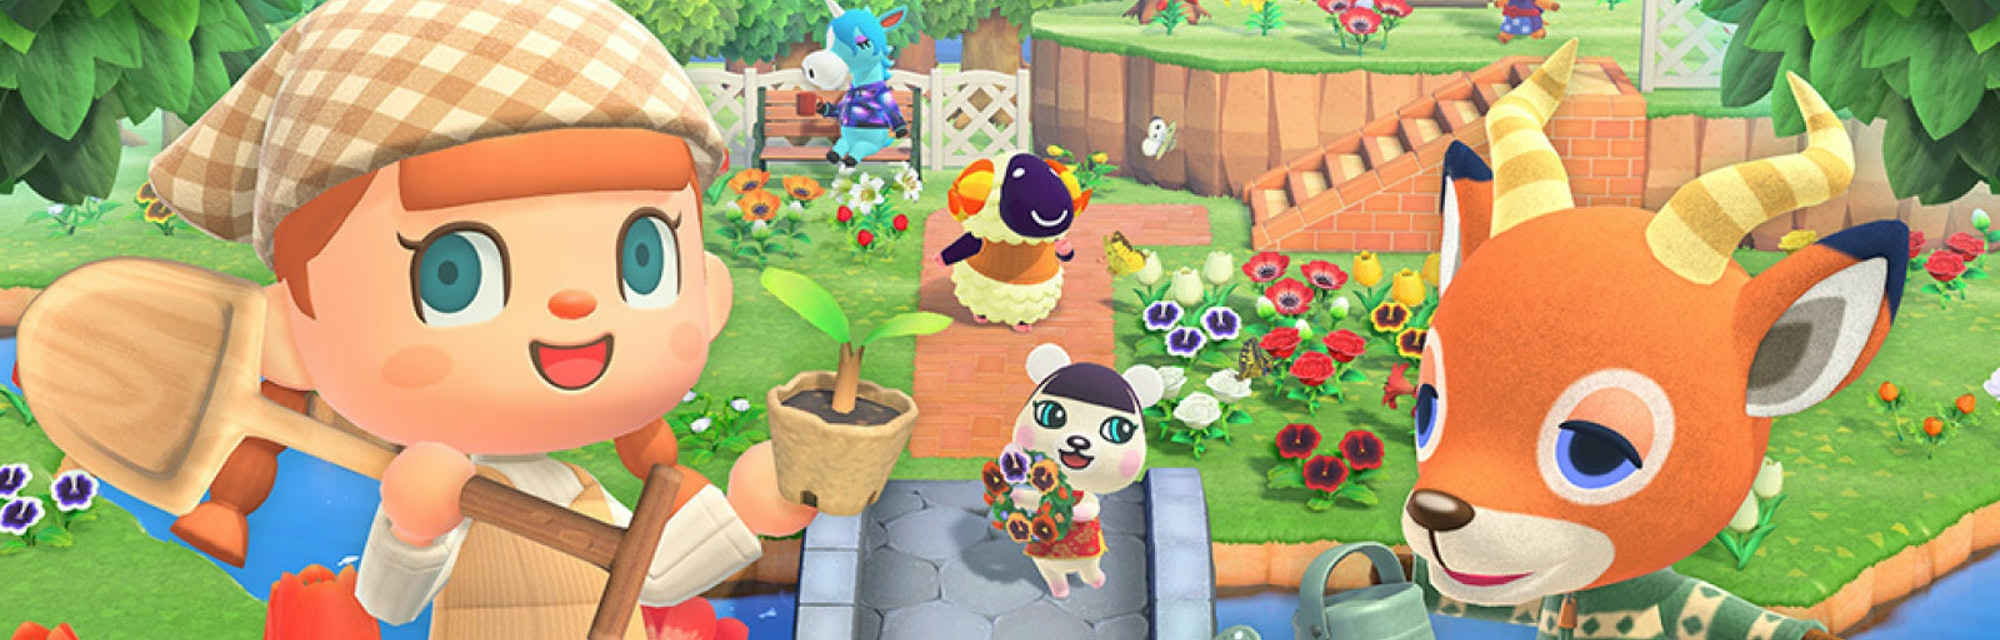 Animal Crossing New Horizons Reviews 4 Crucial Details We Learned